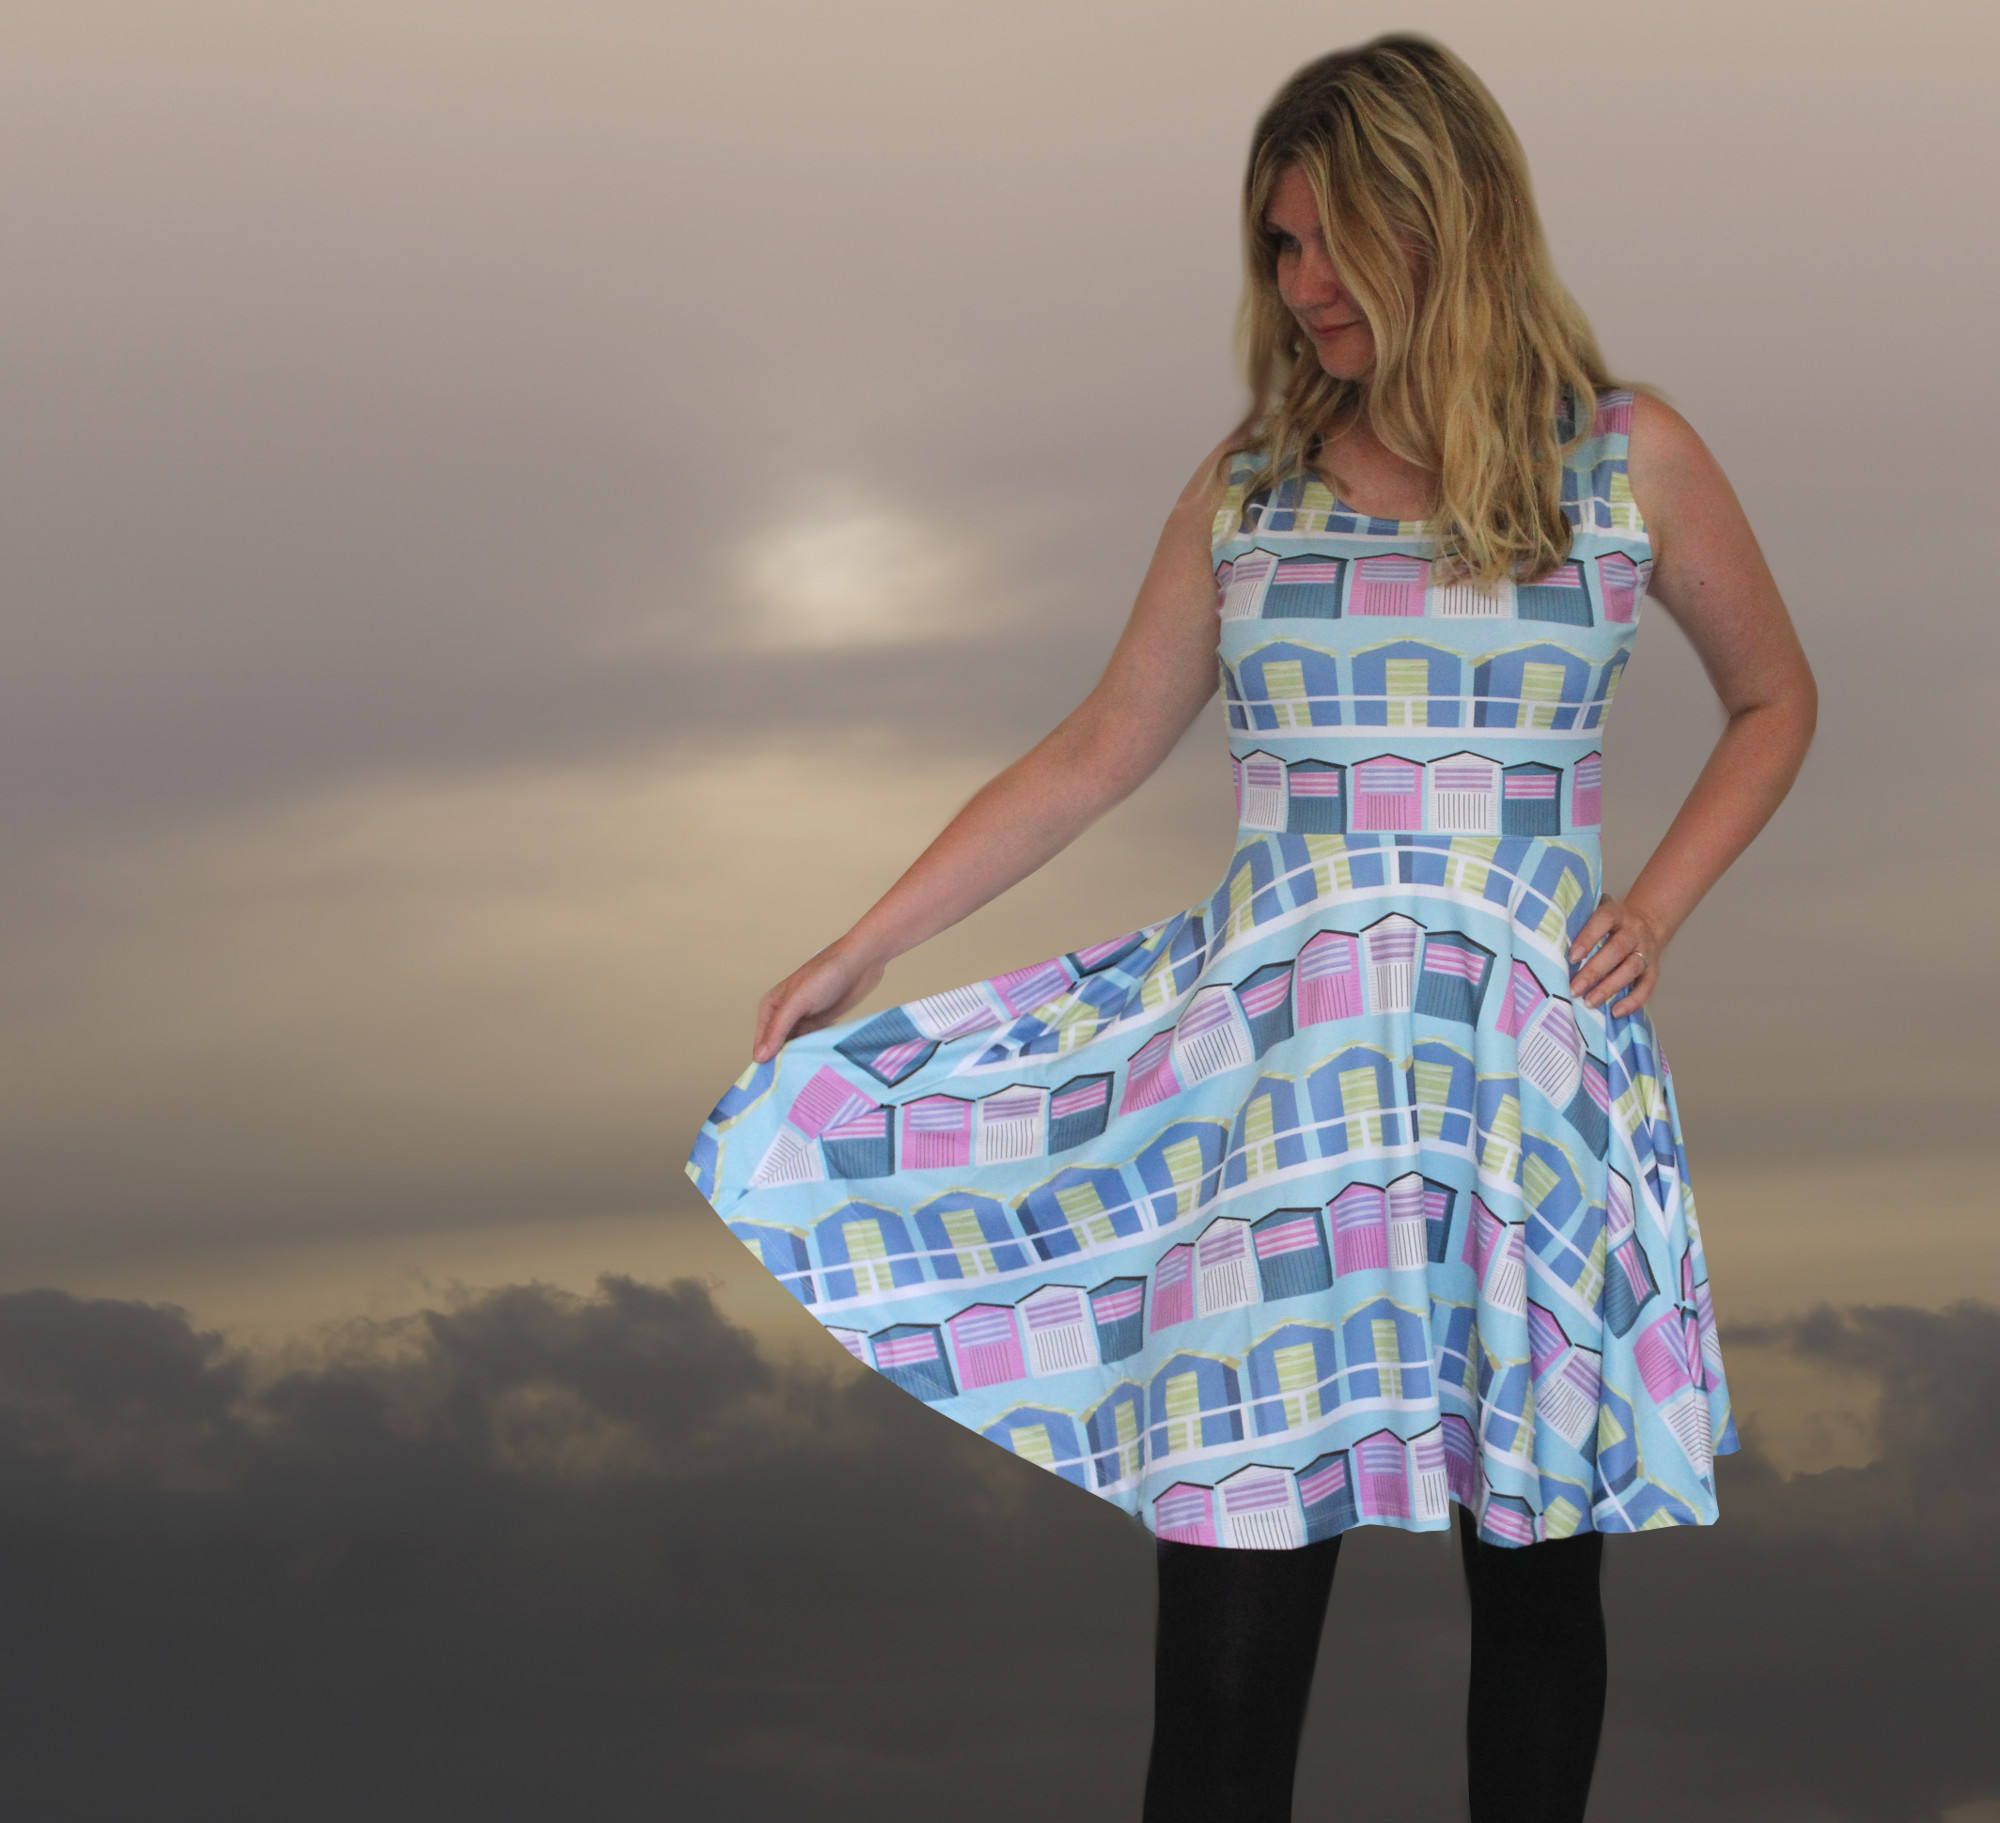 Printed dress with unique summer beach huts print on gorgeous fit flare style.  This flattering dress is designed to hug to the natural waist before flaring out across the hips. The shape is great for taking you through the seasons, accessorised with sunglasses and a wide belt for summer days, or worn with boots and leggings and a cardigan to take you through autumn and into winter. The material has the sheen associated with sublimation printing and a soft feel but is opaque and strong…